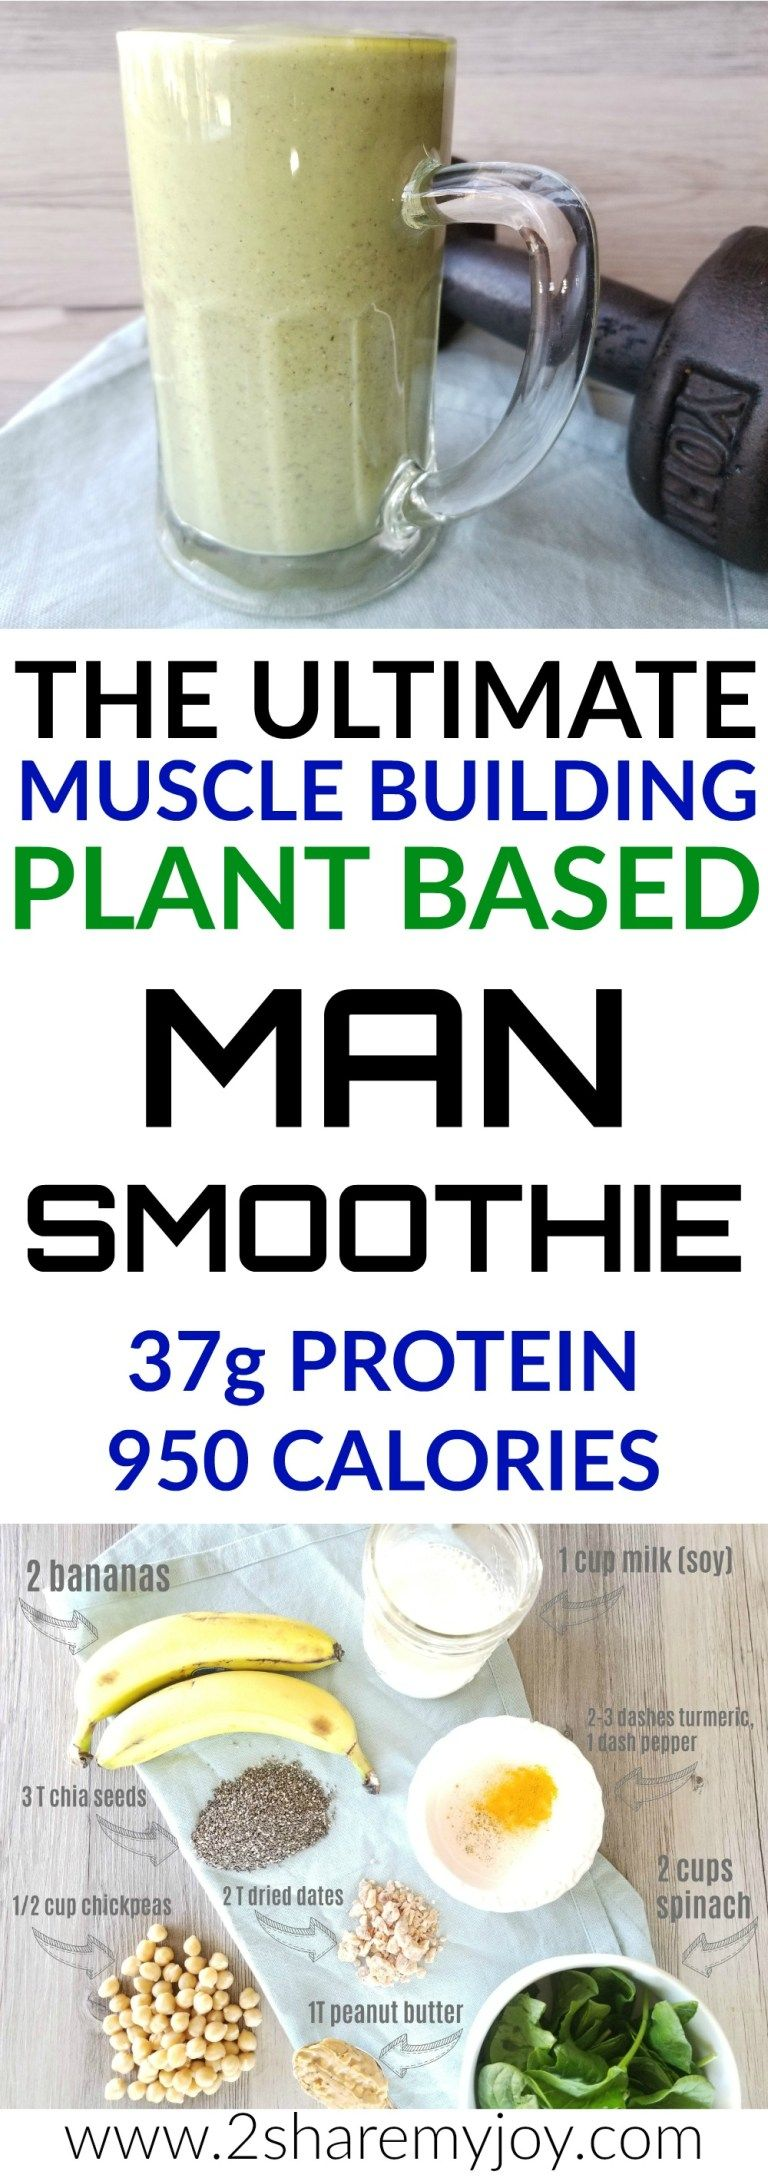 Ultimate Muscle Building Vegan Smoothie (37g protein) #protiendiet